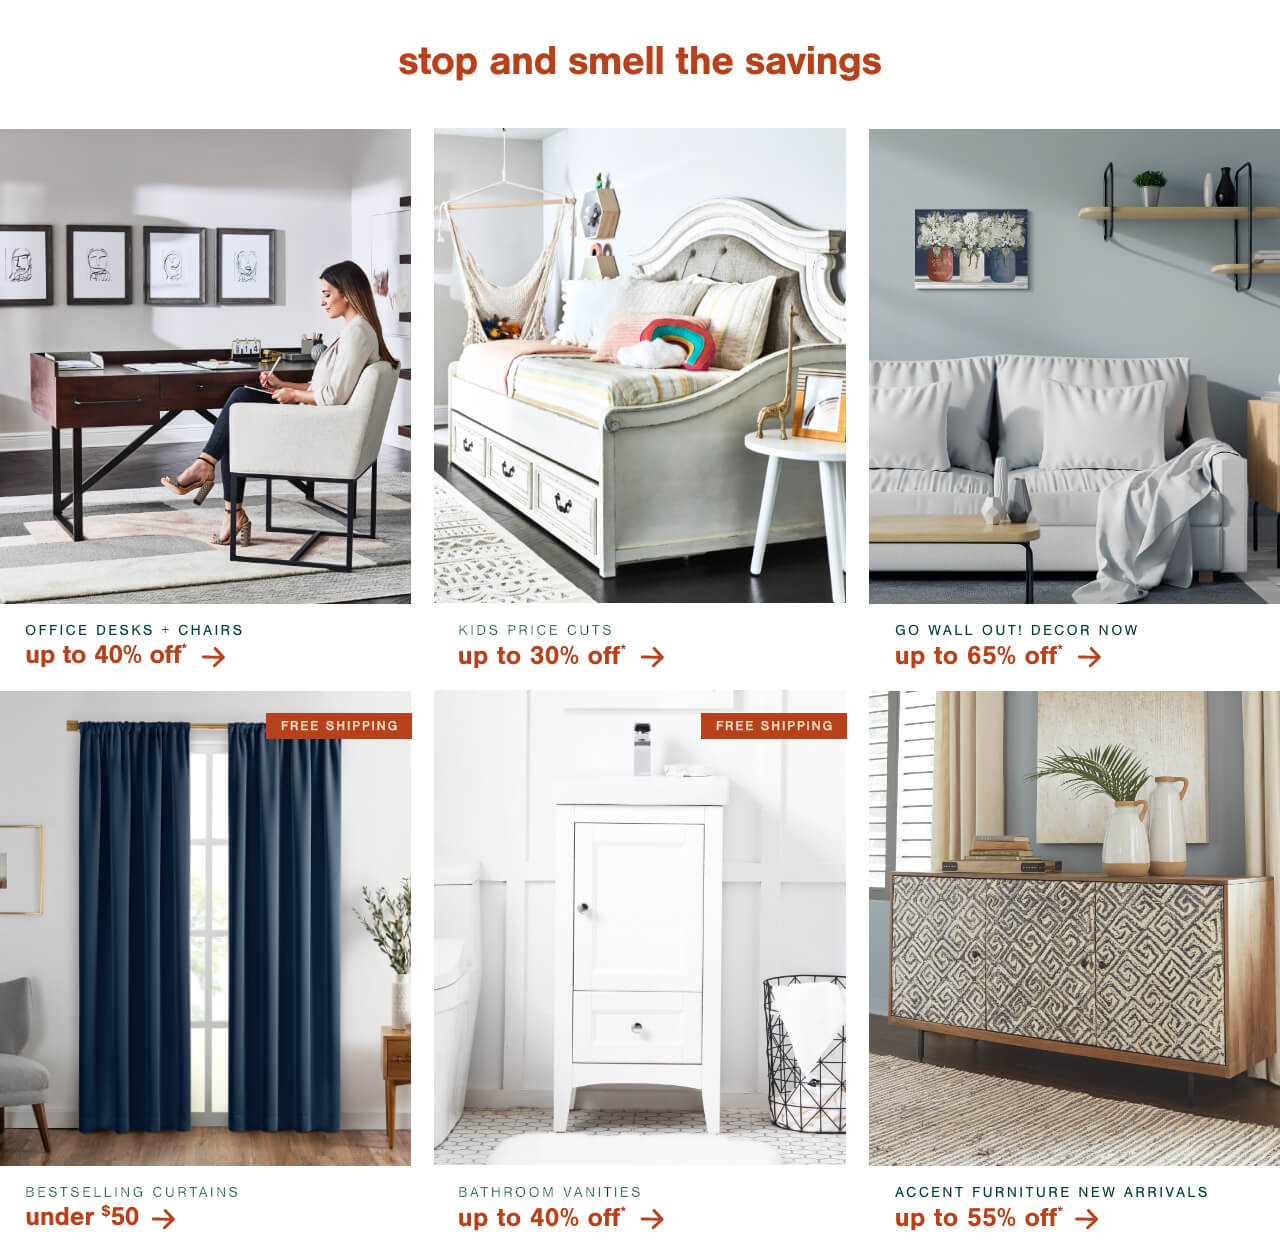 Office Desks and Chairs up to 40% Off*,Kids Price Cuts Up to 30% Off*        ,Go WALL Out! Wall Décor now up to 65% Off, Best Selling Curtains Under $50 + Free Shipping        , Bathroom Storage Up to 50% Off + Free Shipping   , Accent Furniture New Arrivals up to 55% Off!